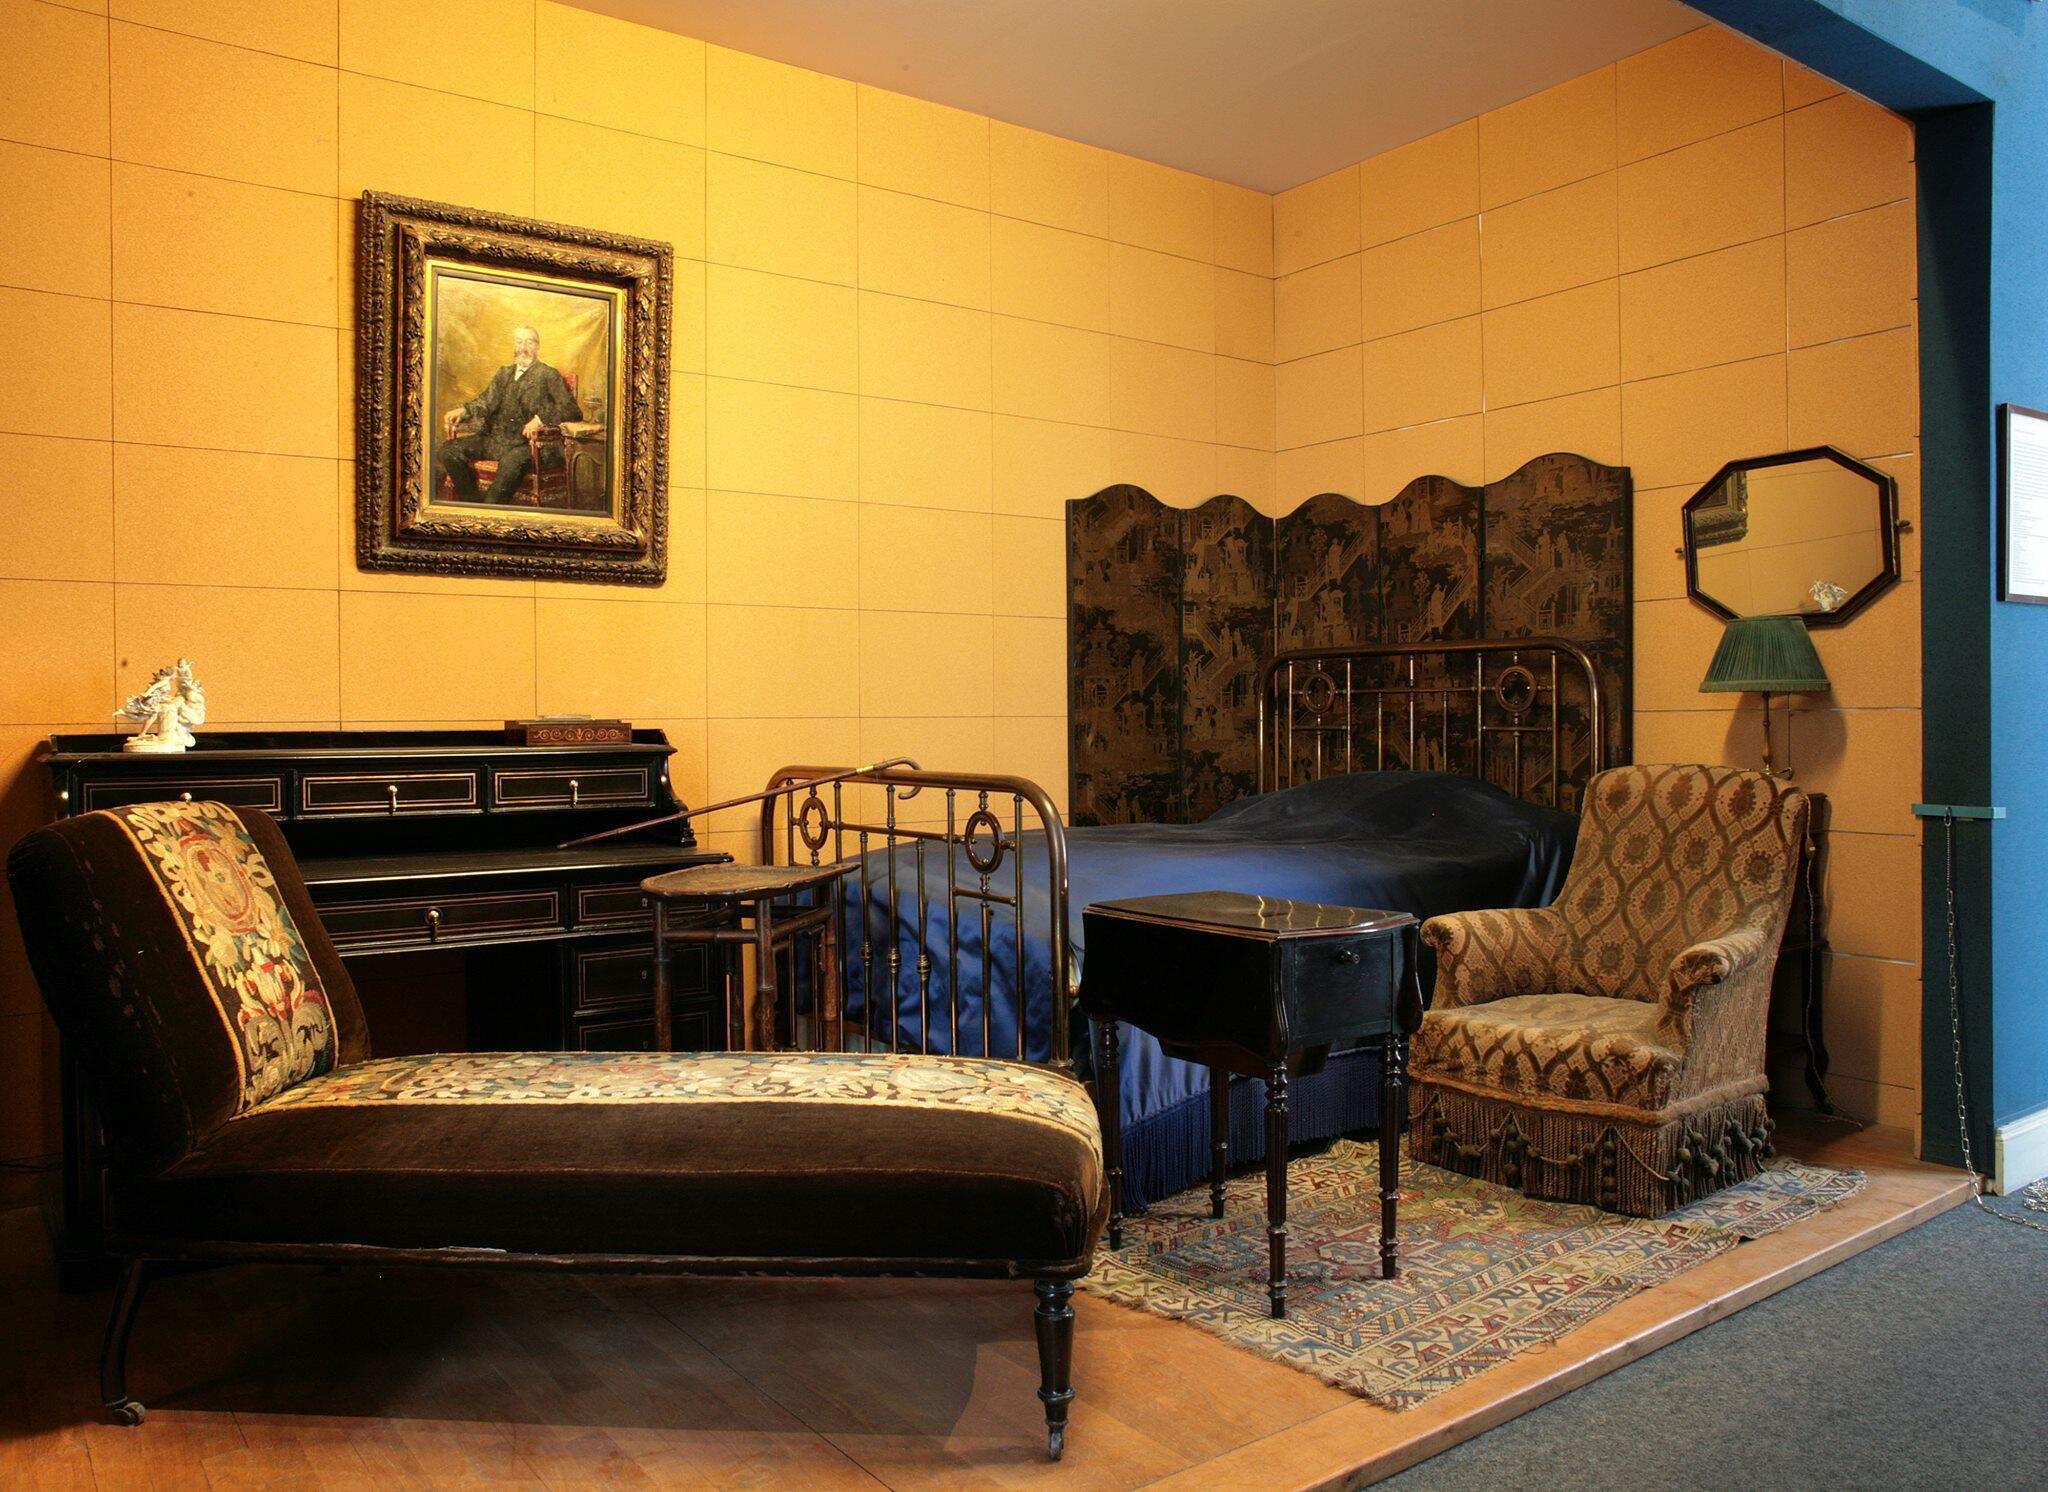 Marcel Proust's room at the Musée Carnavalet in Paris